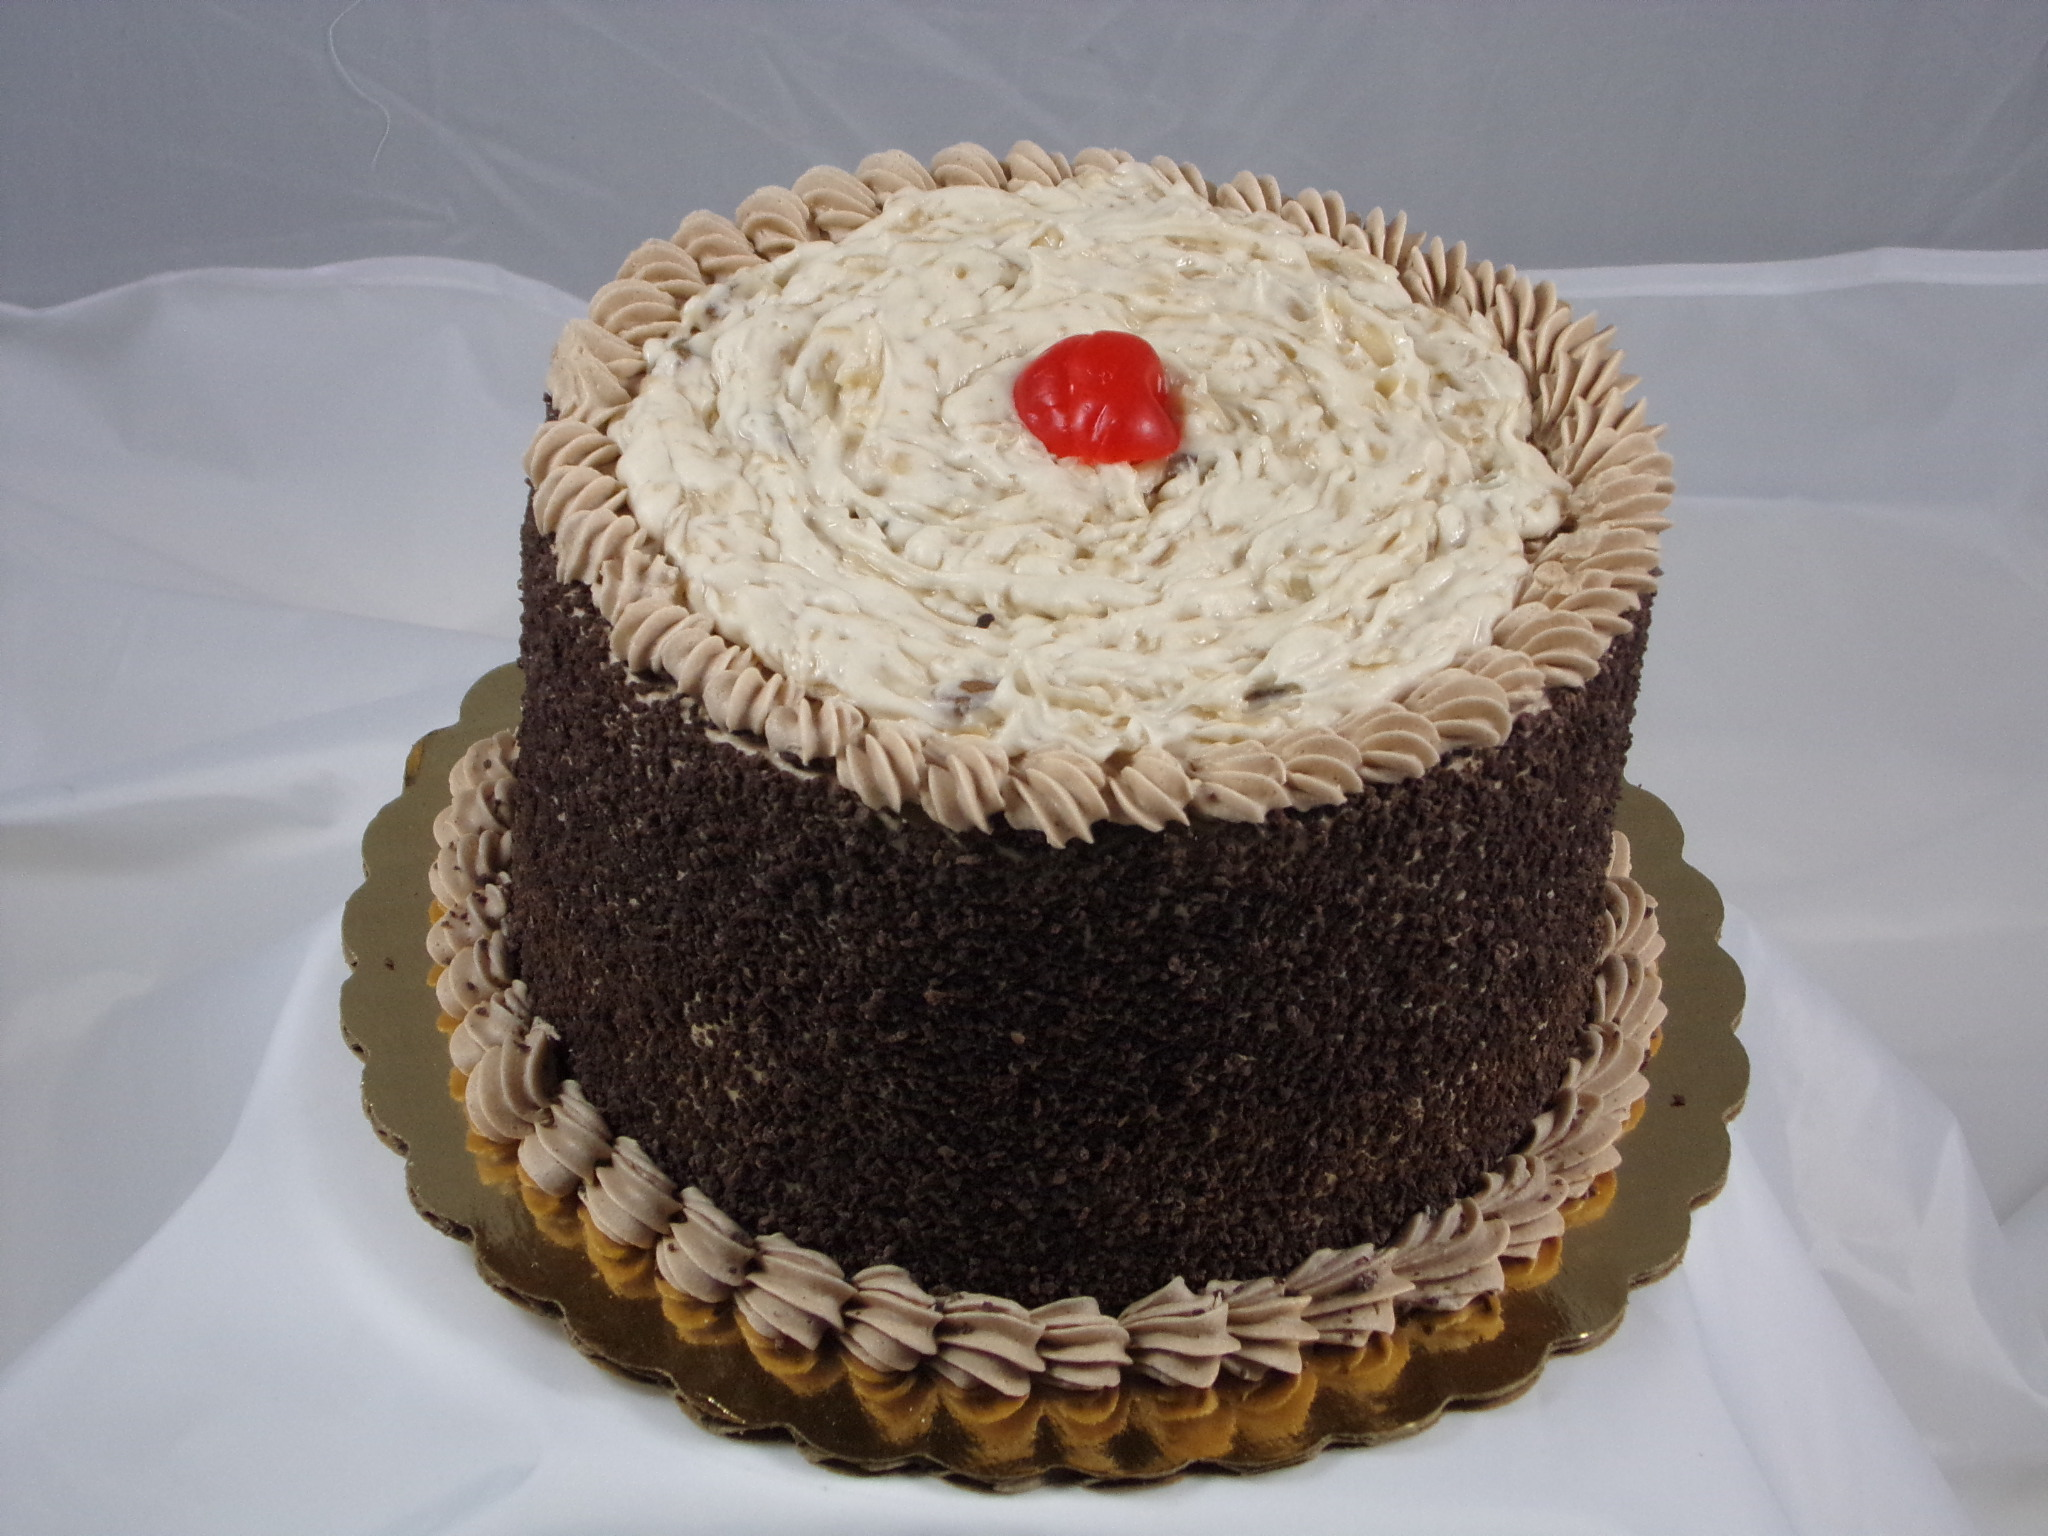 6″ German Chocolate Cake